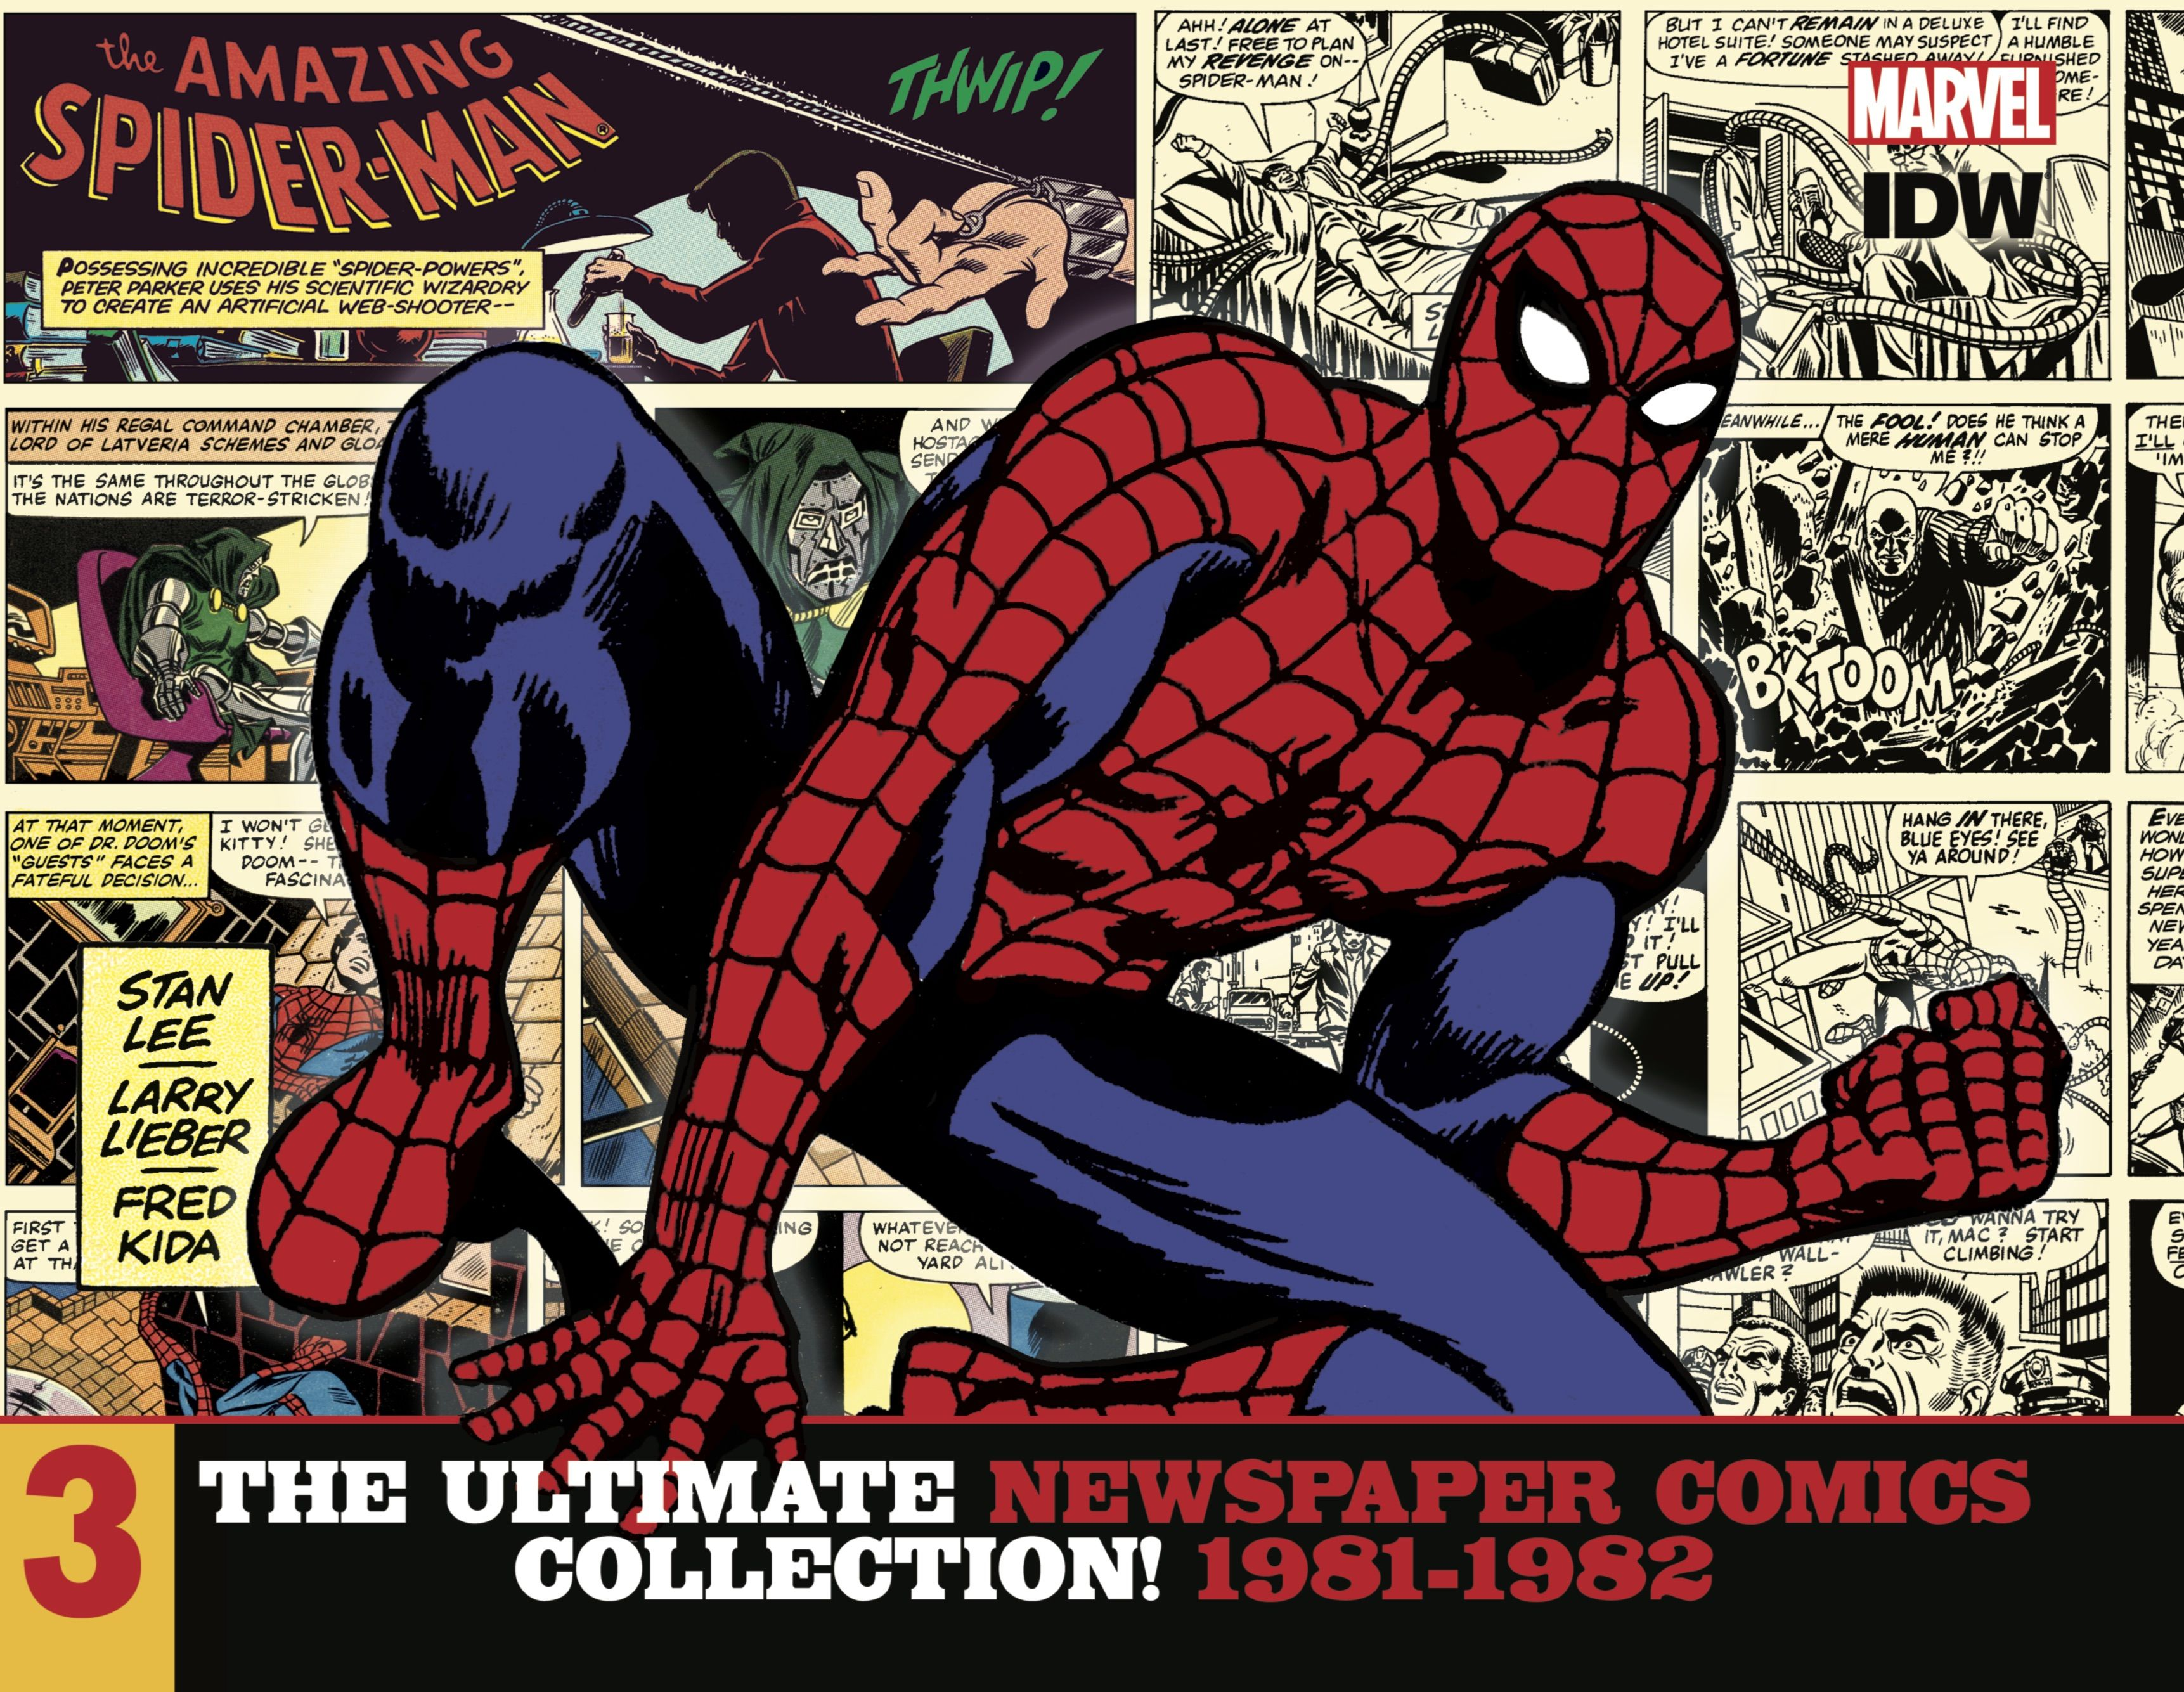 End of an era: Longtime Amazing Spider-Man comic strip will end after 42 years